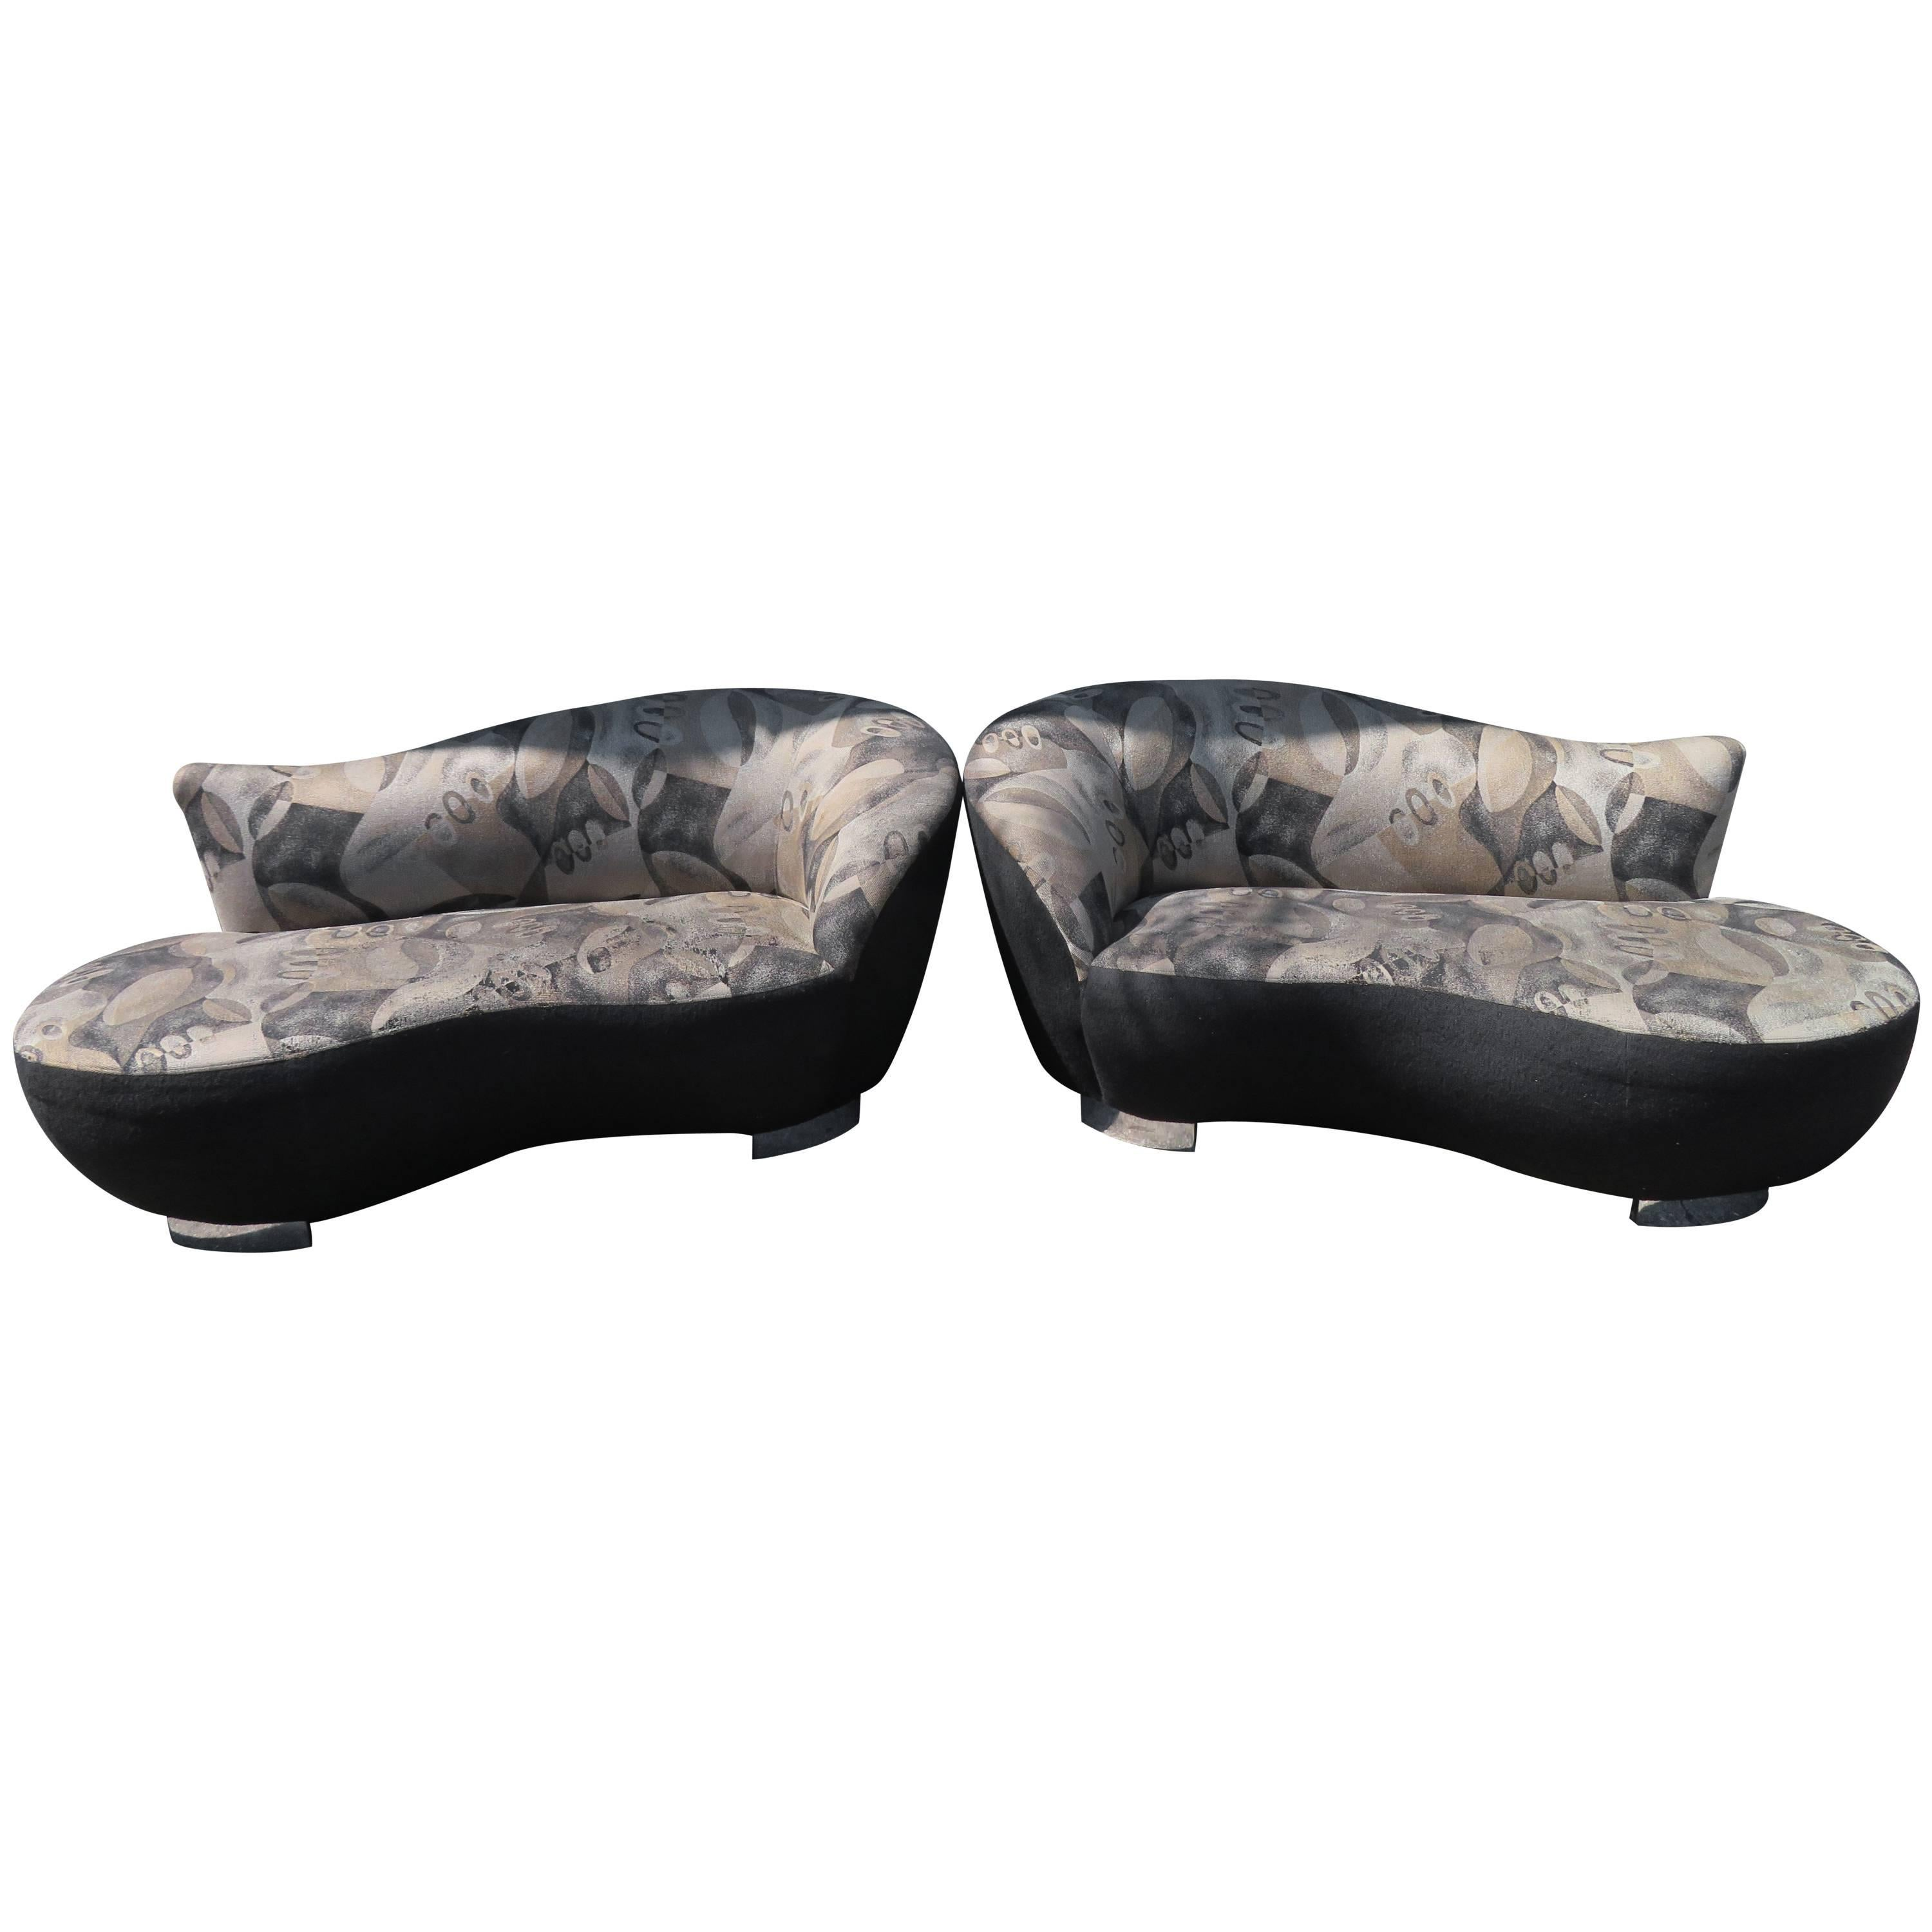 stunning pair of petite vladimir kagan style cloud kidney shaped sofa loveseat 1